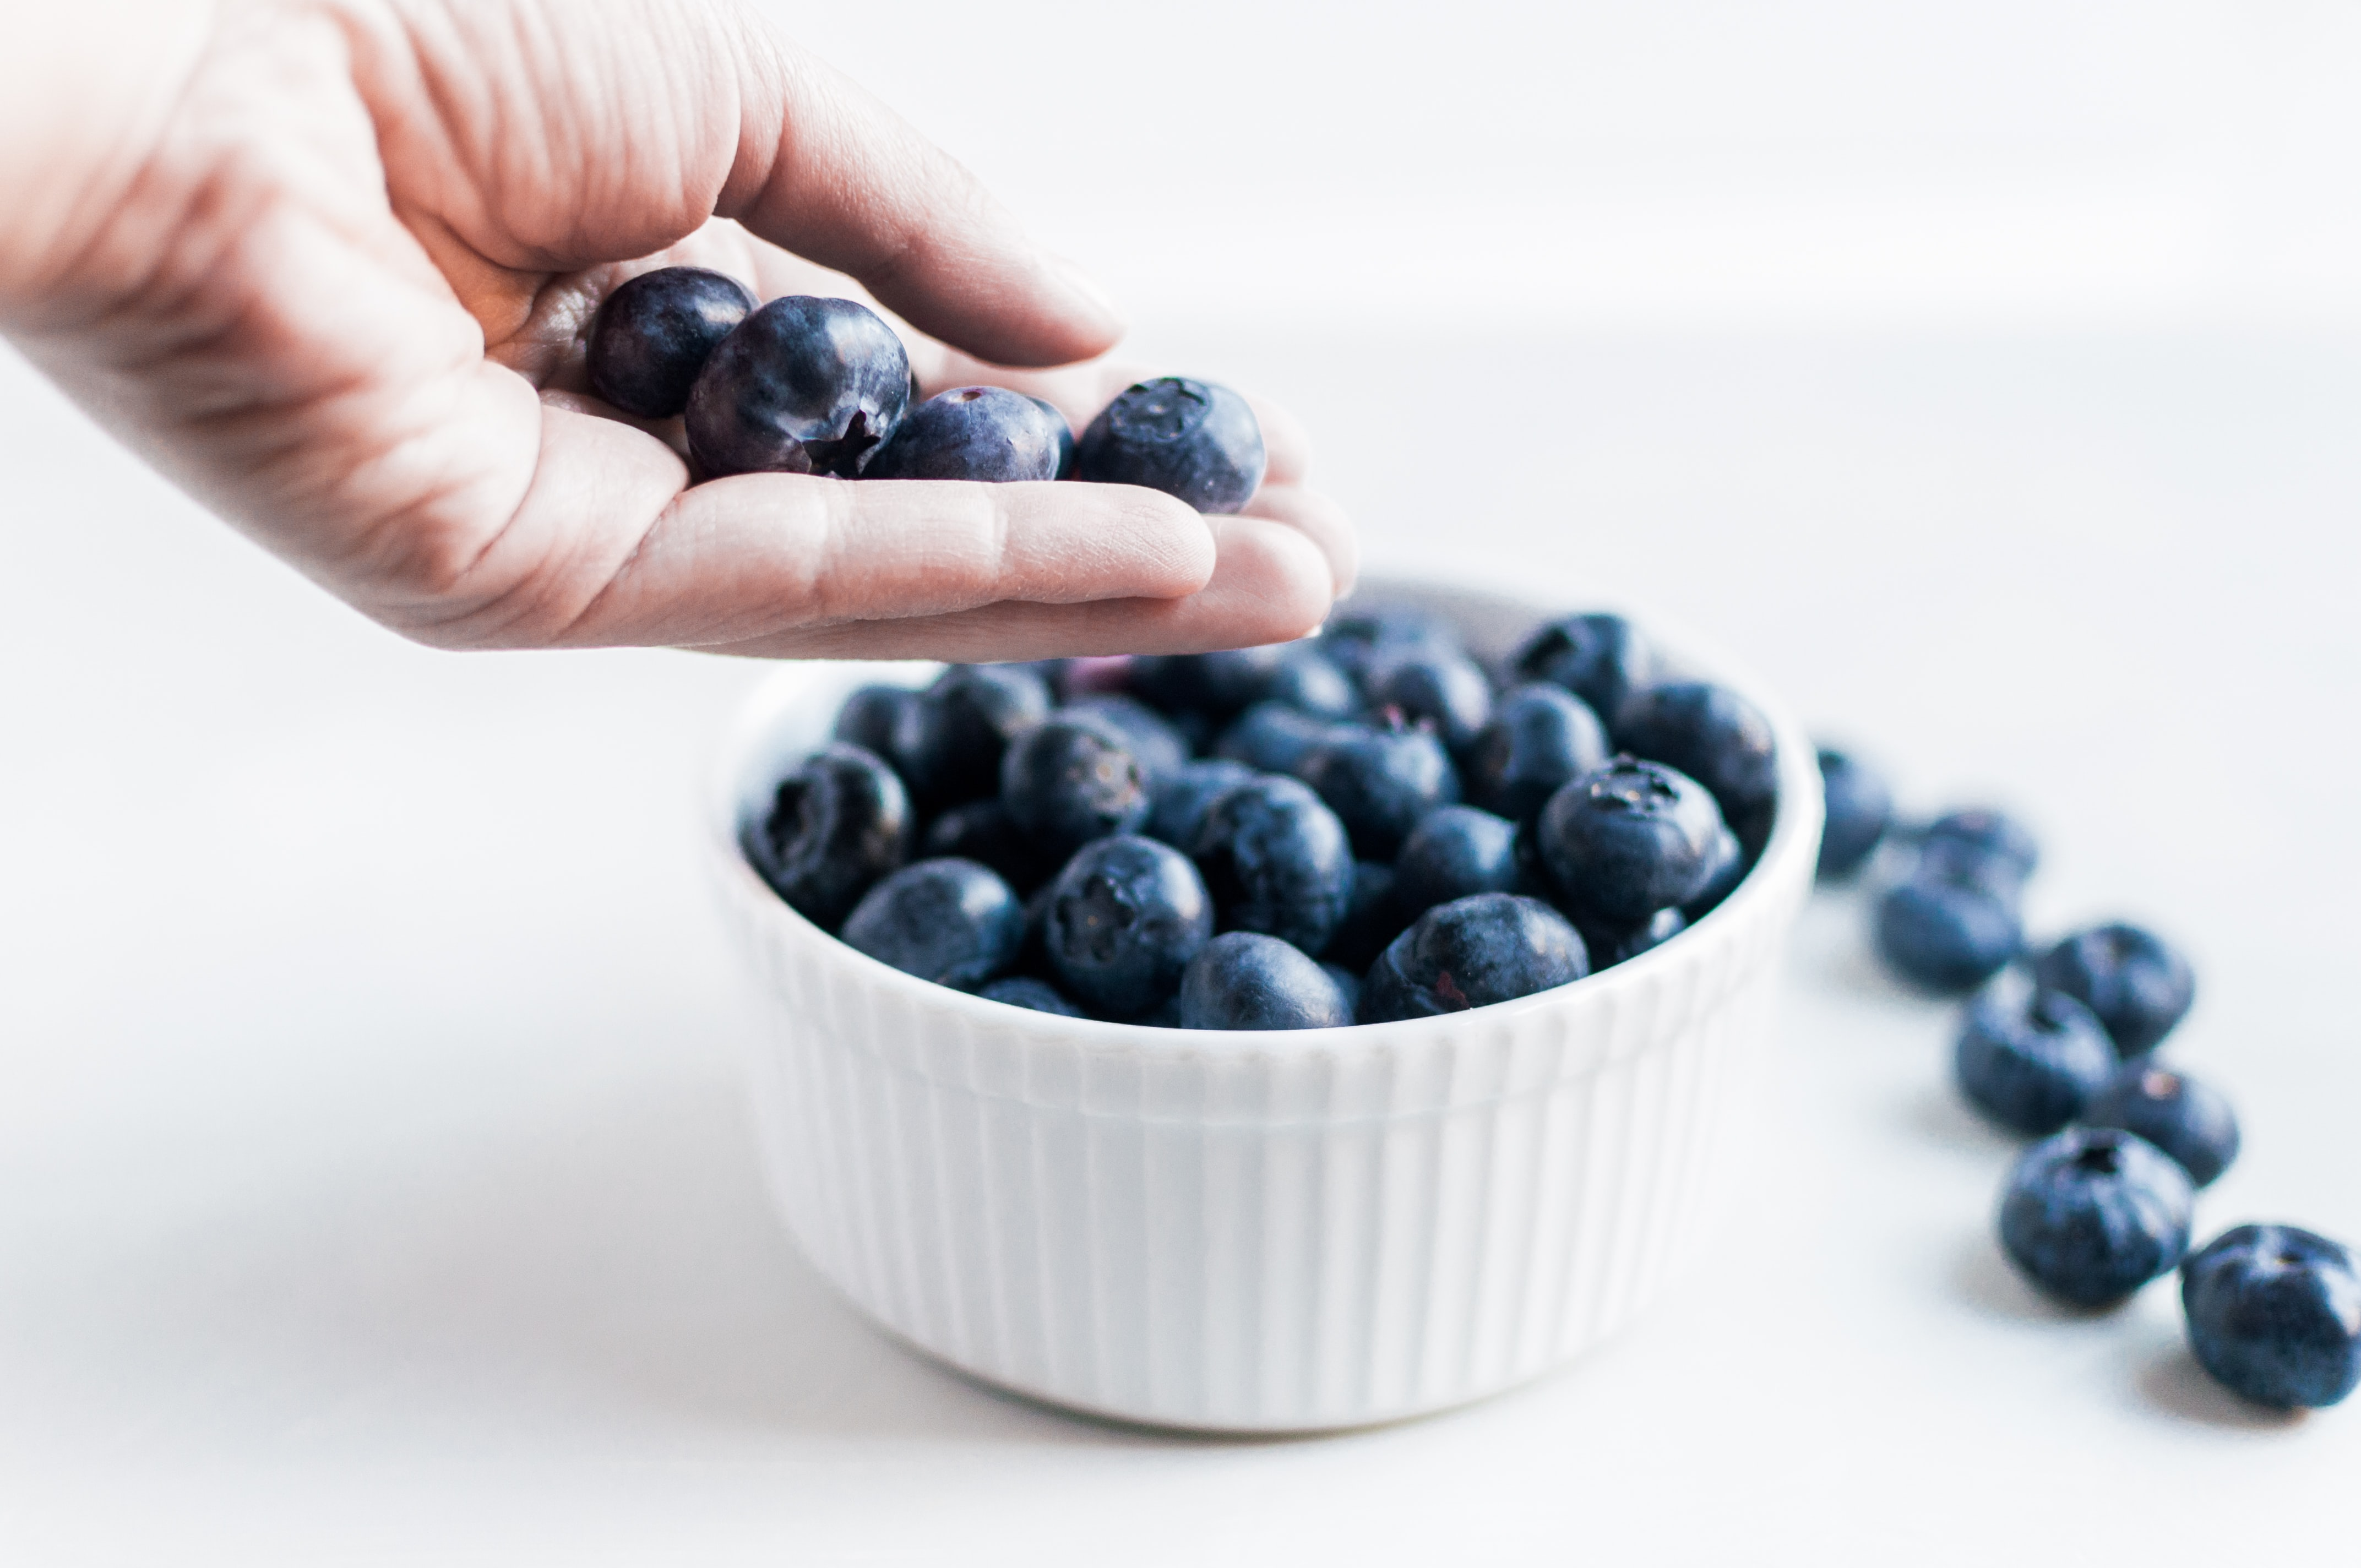 blueberries on white ceramic ramekin